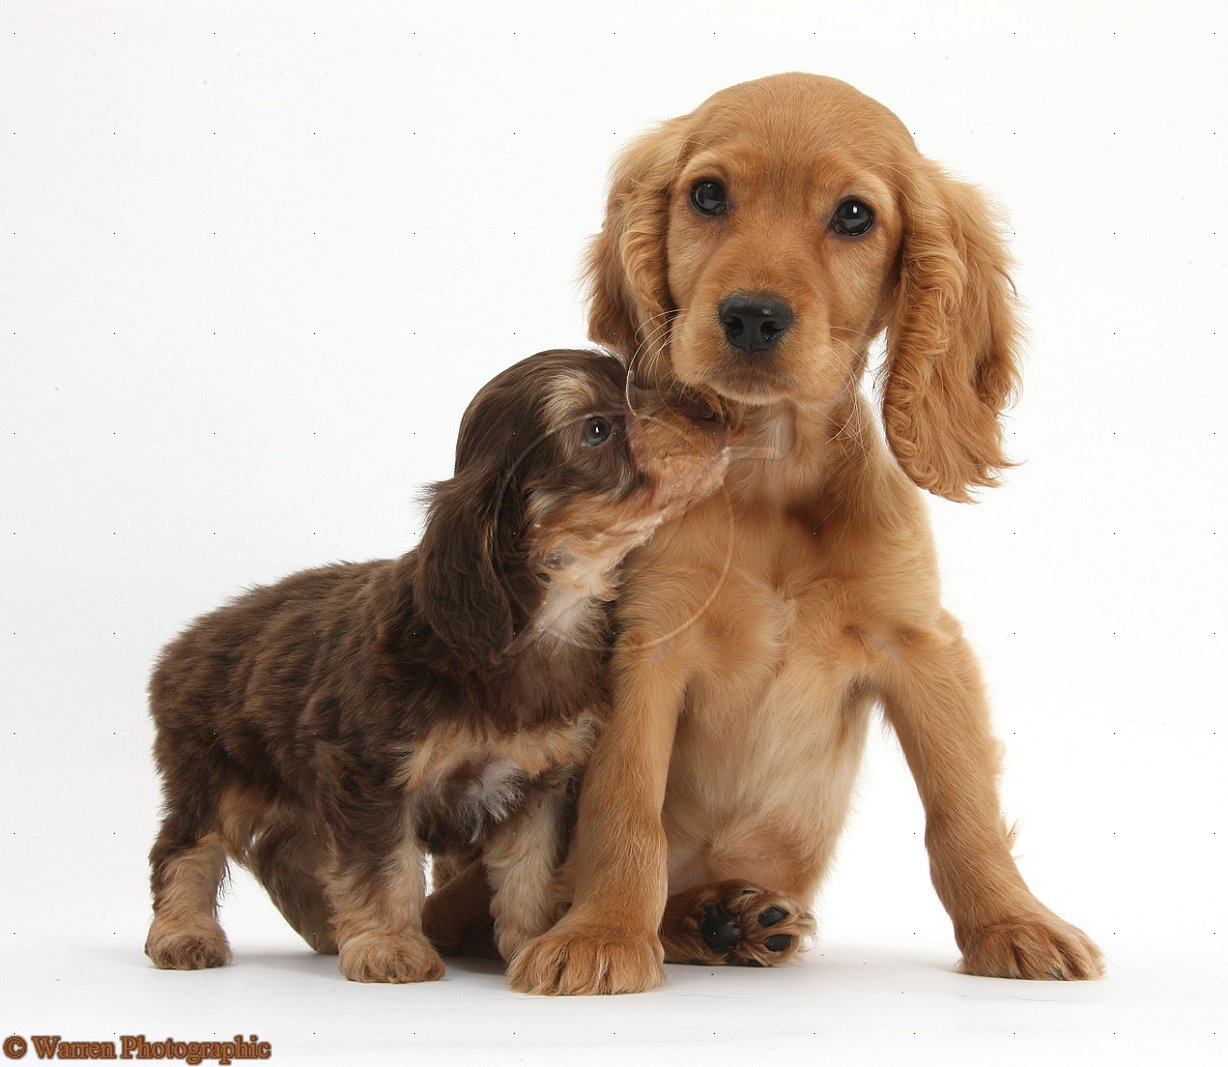 cocker spaniel puppiesGolden Cocker Puppies